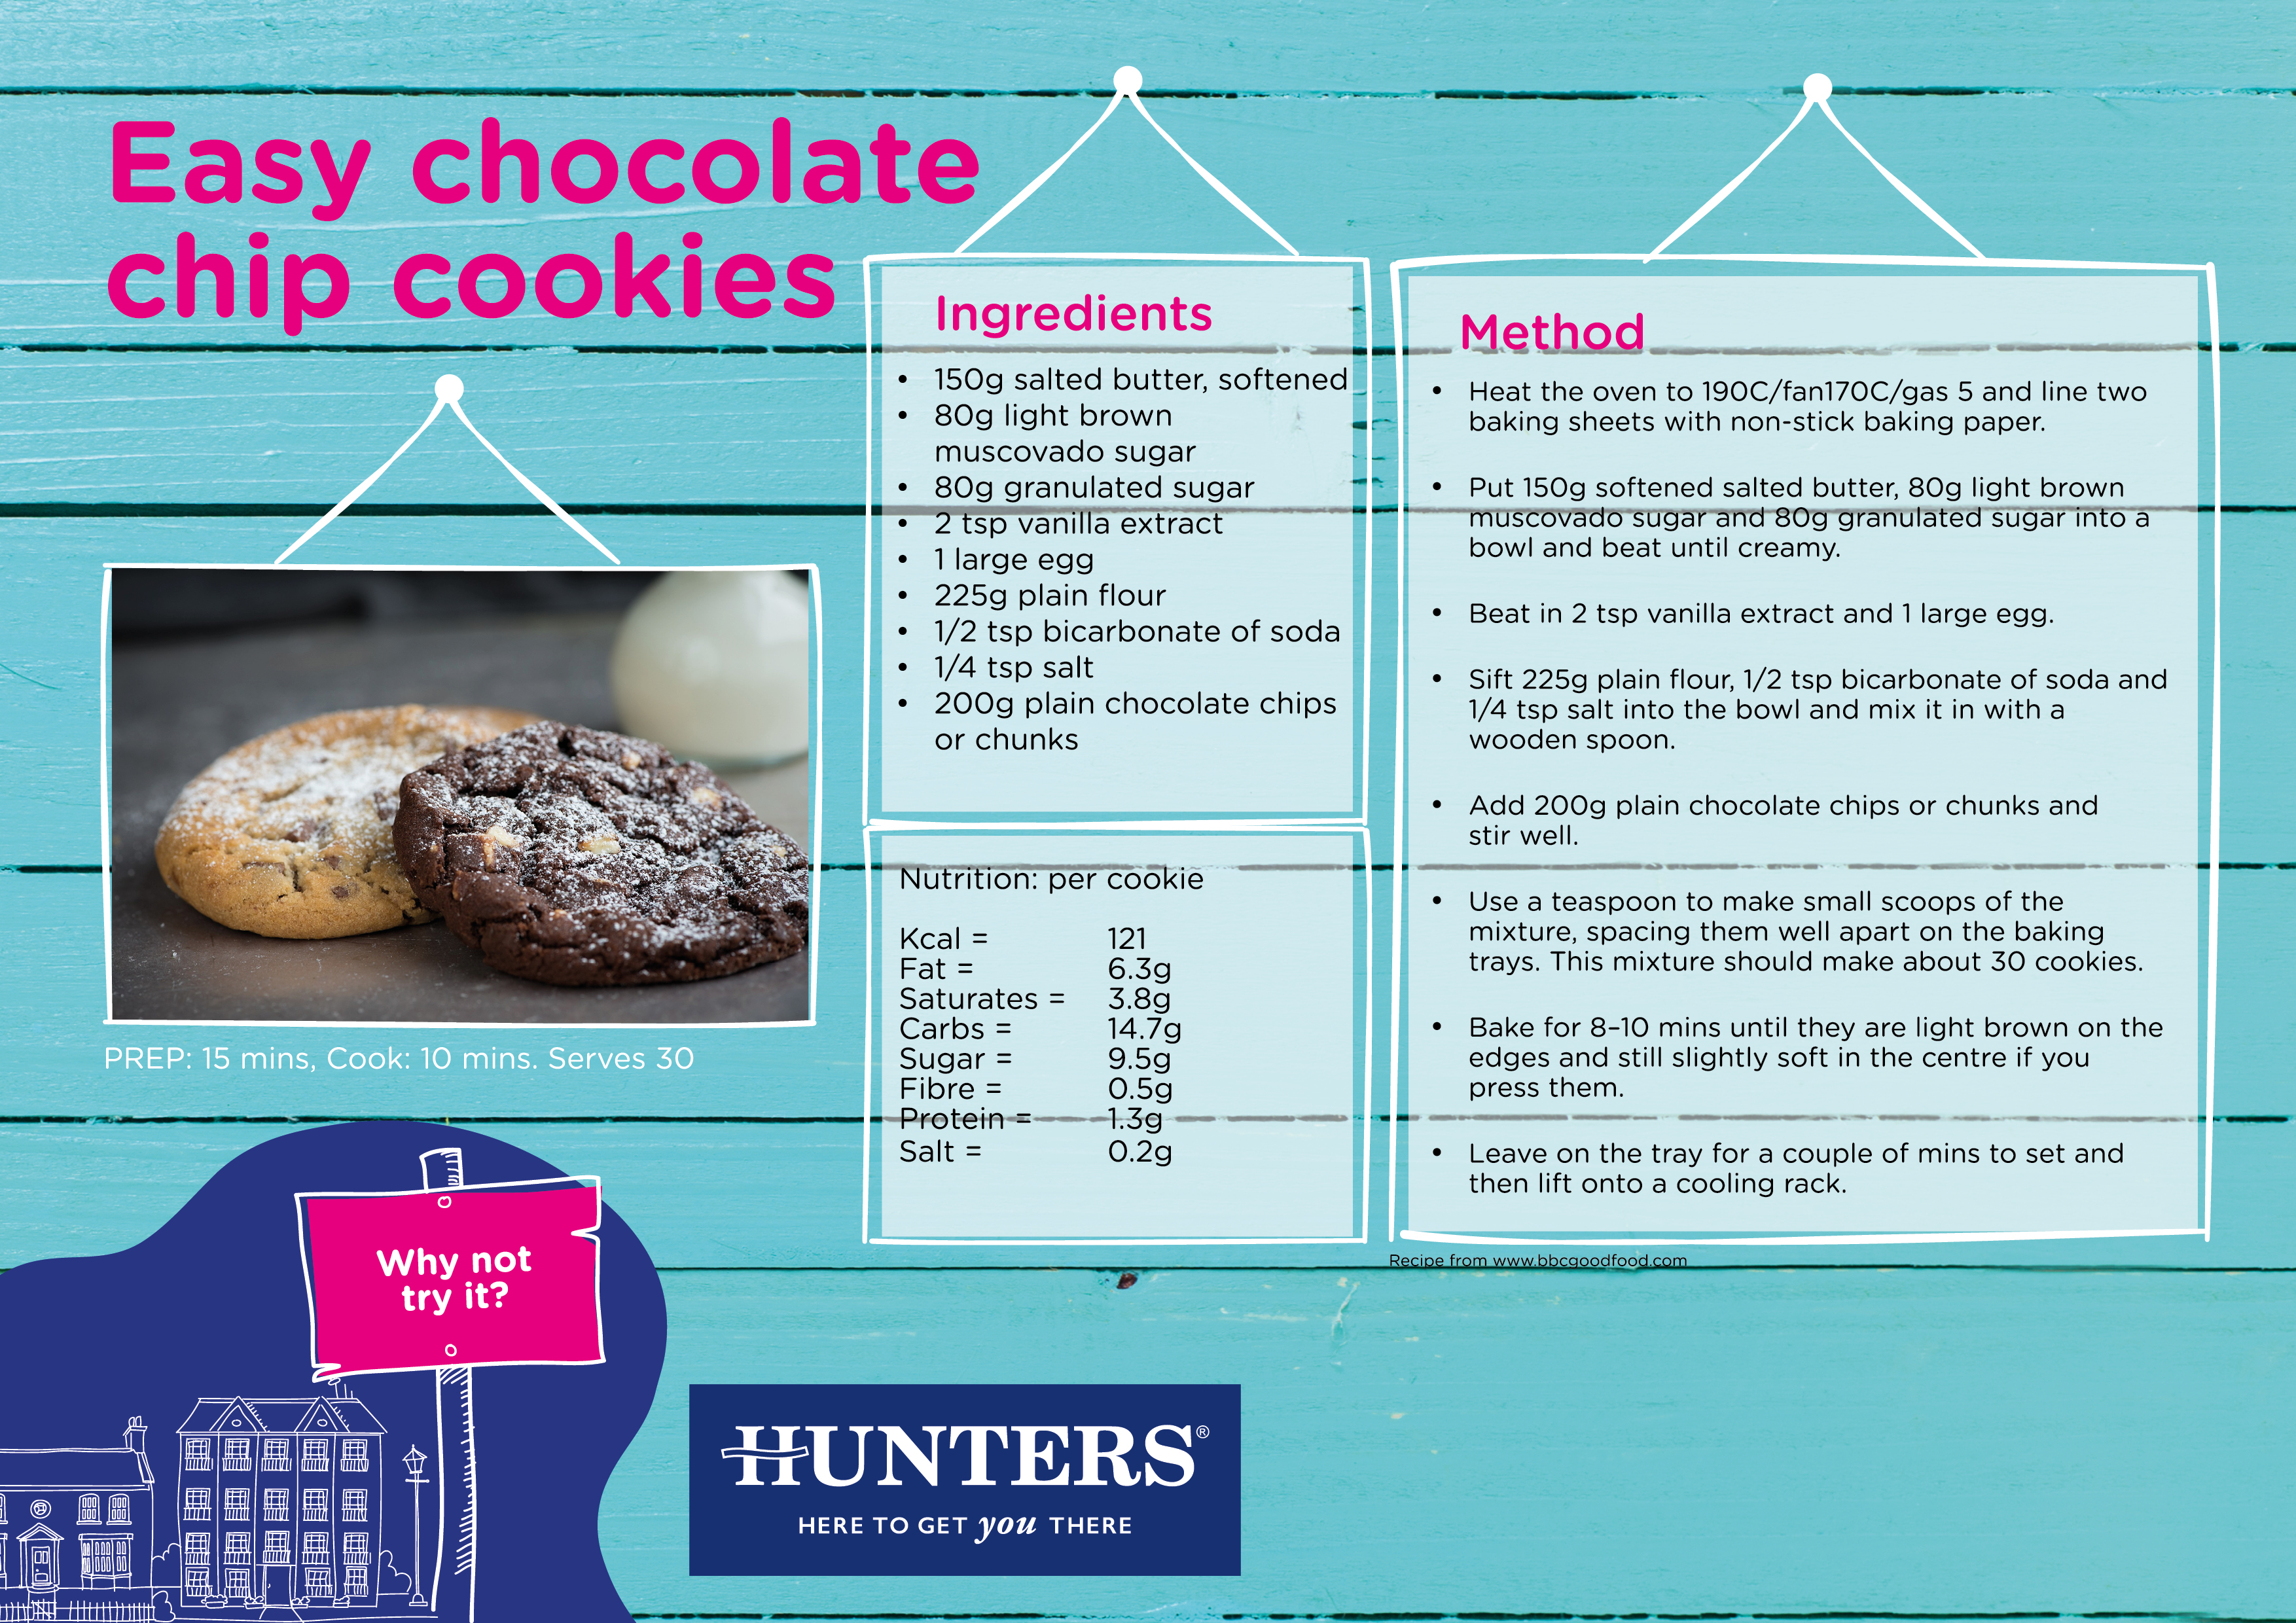 Hunters Activity Zone - Baking Chocolate Chip Cookies